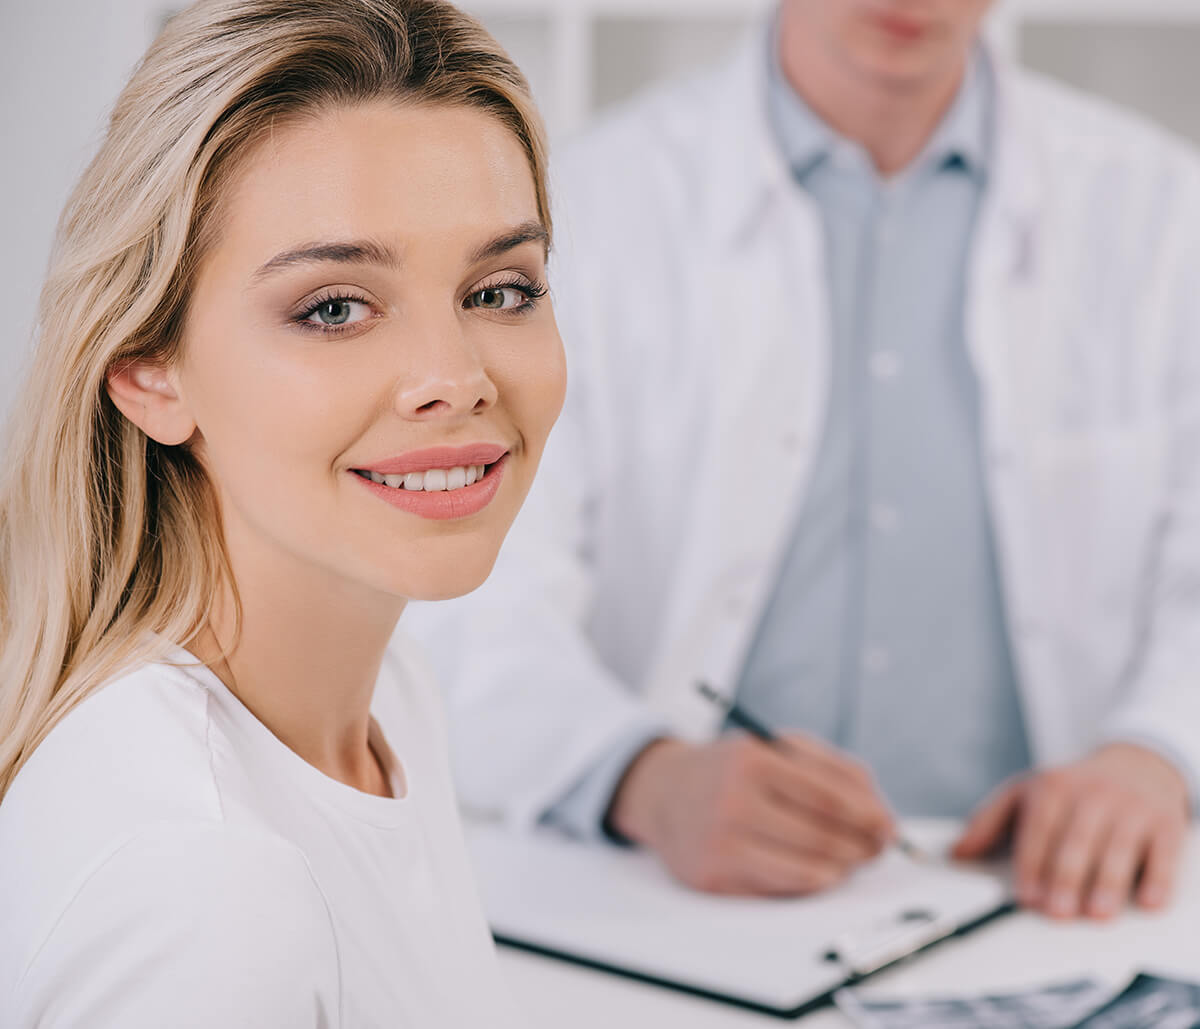 Types of Cosmetic Dentistry Procedures Available Through in Charleston Area